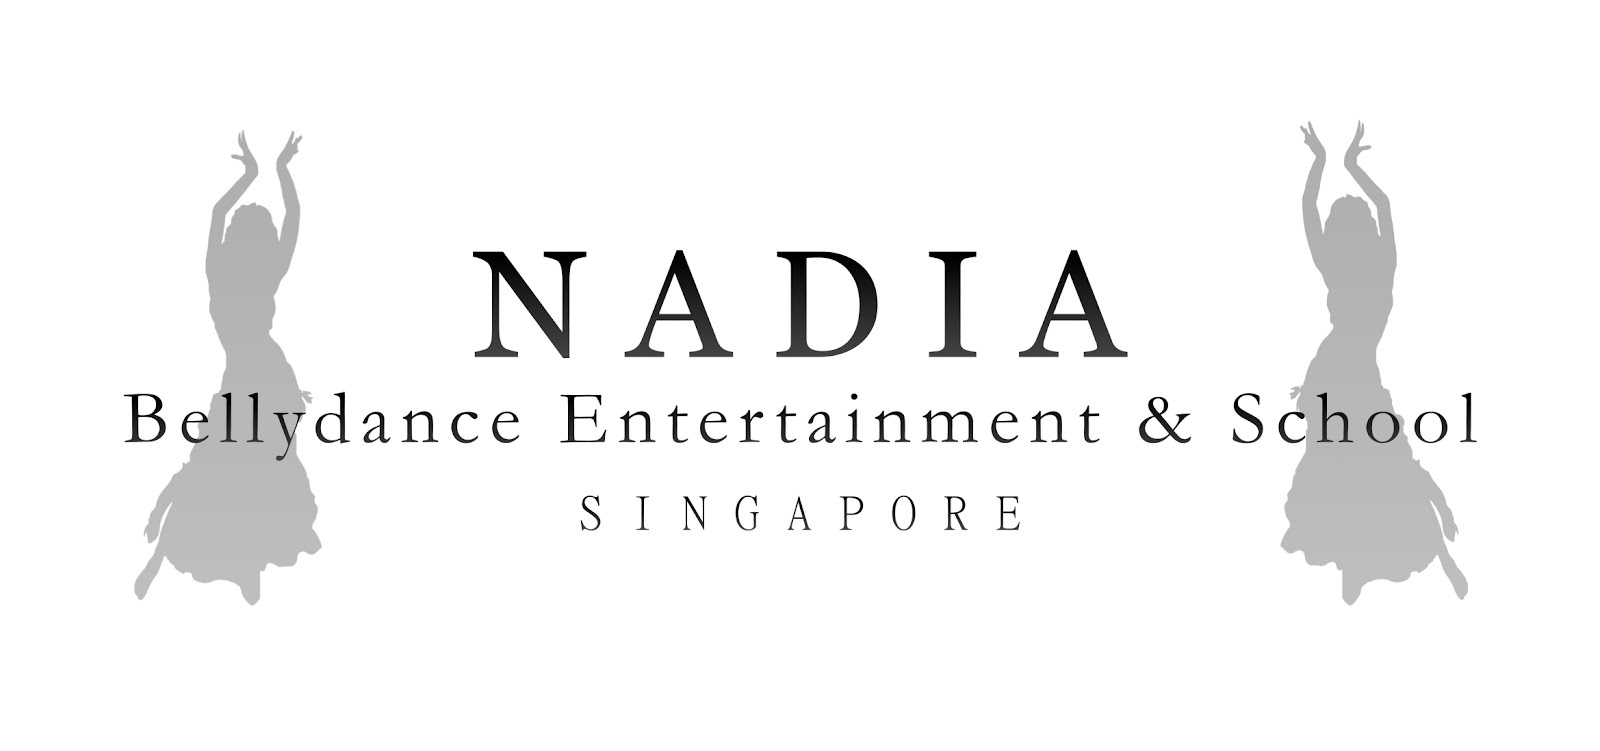 NADIA Bellydance & Entertainment School, Singapore